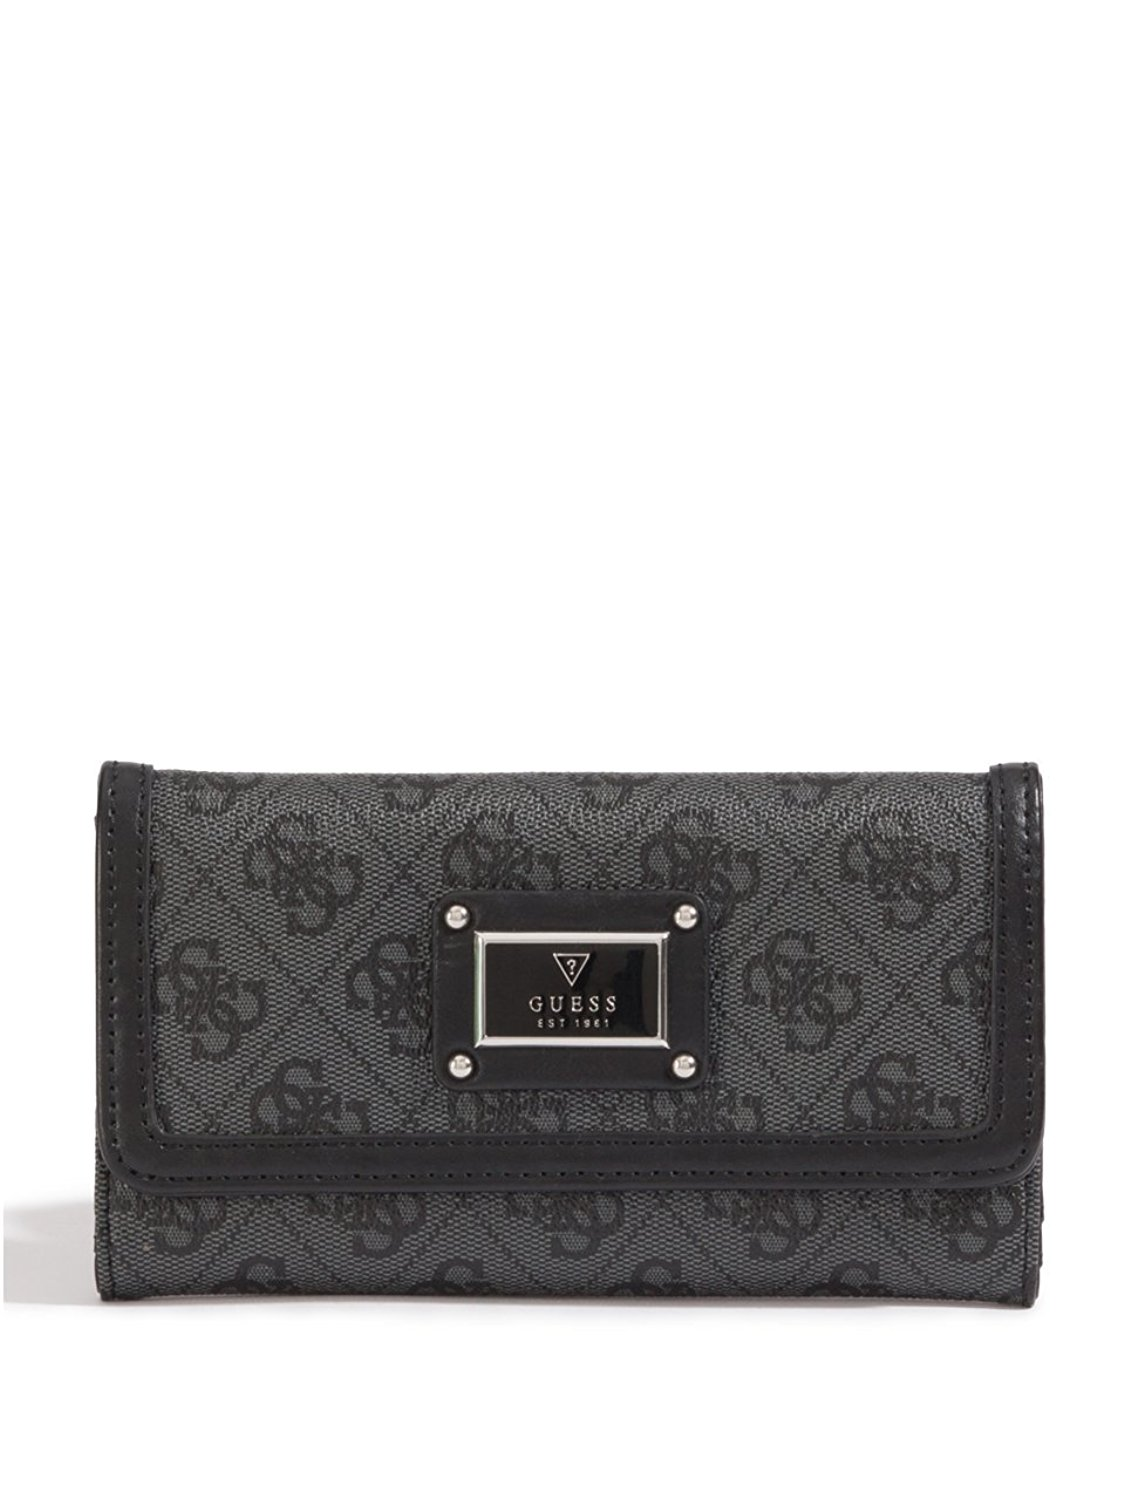 c171ddefbf Get Quotations · GUESS Womens Scandal SLG Slim Clutch